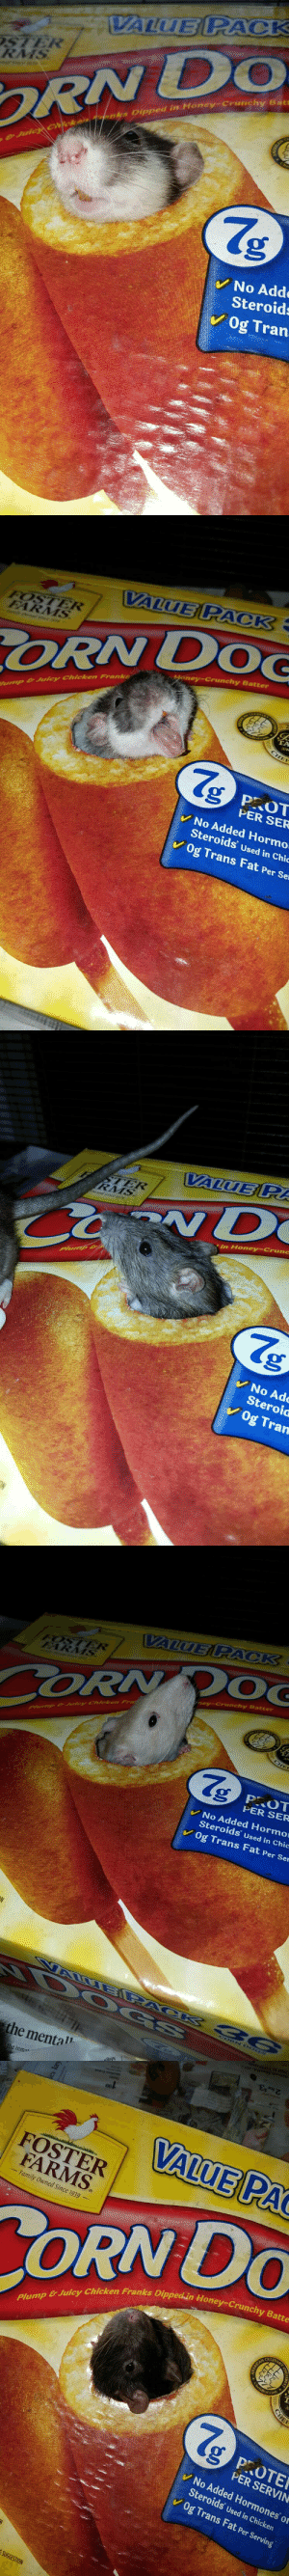 minuscule-goblin: docking-bay-94:   anonymousfragger:  so we got a corndog box for the rats and my brilliant roommate cut a hole so all of our rats will become corndogs  my naym is ratdeez are my frienddis box of snaxit is our land thru hols you maydwe play preteni poke my hedcondog i am   What the fuck, Sagan. : VALUE PACK  STER  RMS  RN DO  & JuicyCickan nks Dipped in Honey-Crunchy Bat  No Add  Steroids  Og Tran.   VALUE PACK  FOSTER  FARMS  ORN DOG  Honey-Crunchy Batter  NARY  ump&Juicy Chicken Frank  Chersescom  СHEE  g P.OT  PER SER  No Added Hormo  Steroids Used in Chic  Og Trans Fat Per Ser   VALUE P  STER  RMS  wnad sincezo  C vD  in Honey-Crunc  Plump &  No Adc  Steroid  Og Tran   VALUE PACK  FOSTER  FARMS  CORN OG  ney-Crunchy Batter  Plump & Julcy Chieken Fra  CHEE  P OT  PER SER  No Added Hormo  Steroids used in Chic  Og Trans Fat Per Ser  VALUIEB RACK C6  DO GS  CORN O0G  the mental  the inma   TAM to 11PM daly  h Ma 4 2017  2 for 3  66  VALUE PAC  daleaaa  FOSTER  FARMS  Family Owned Since 1939  CULISARY CHEE  Plump & Juicy Chicken Franks Dipped in Honey-Crunchy Batte  Chetshest Som  PROTER  PER SERVIN  No Added Hormones or  Steroids Used in Chicken  Og Trans Fat Per Serving  SUGGESTION  EST  MERICAN  CHEF minuscule-goblin: docking-bay-94:   anonymousfragger:  so we got a corndog box for the rats and my brilliant roommate cut a hole so all of our rats will become corndogs  my naym is ratdeez are my frienddis box of snaxit is our land thru hols you maydwe play preteni poke my hedcondog i am   What the fuck, Sagan.